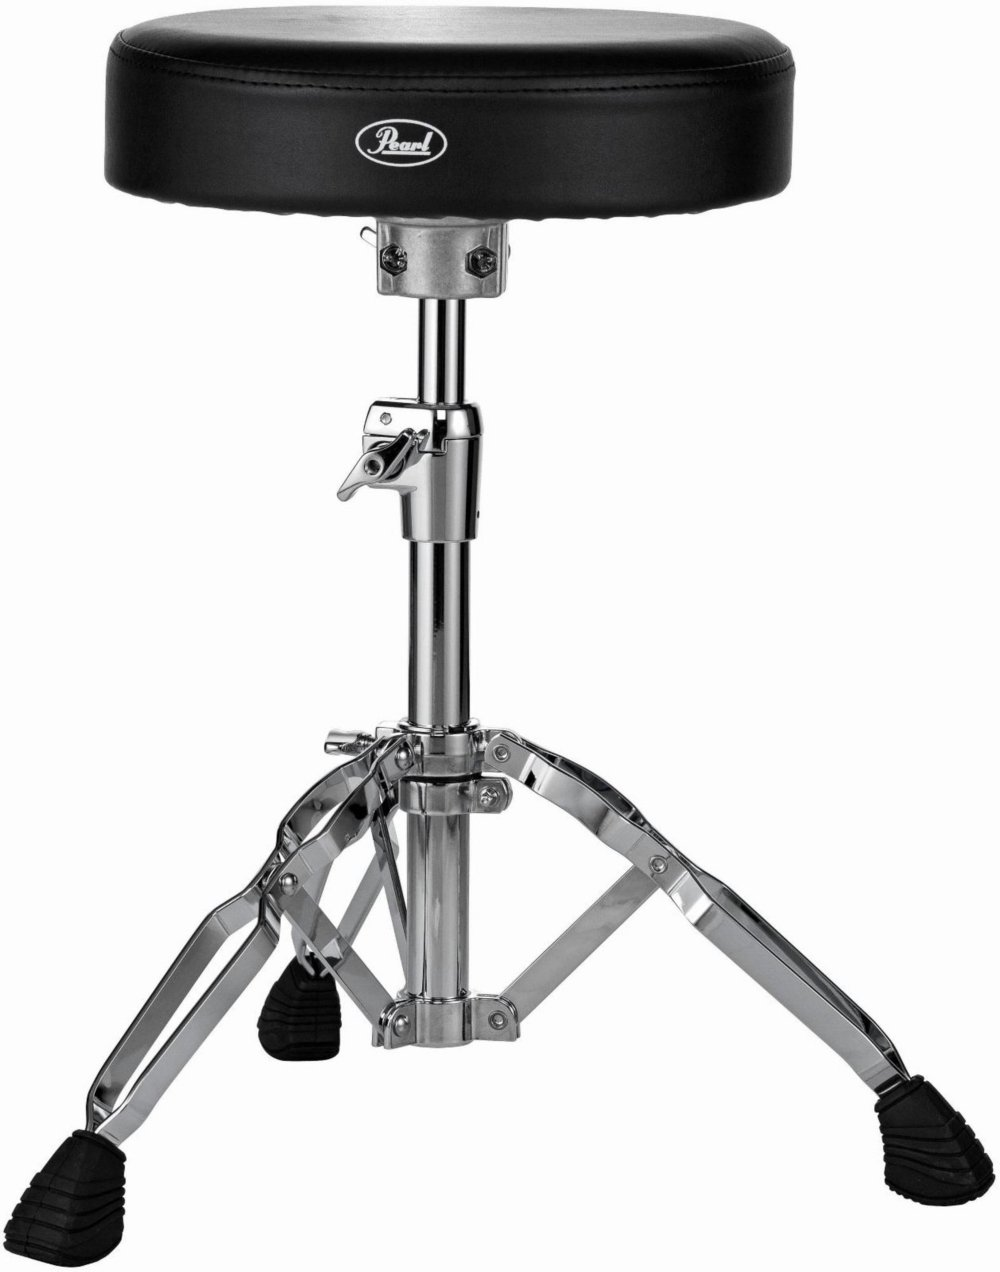 Pearl D930 Throne, Round Cushion and New Trident Design Tripod Pearl Corporation